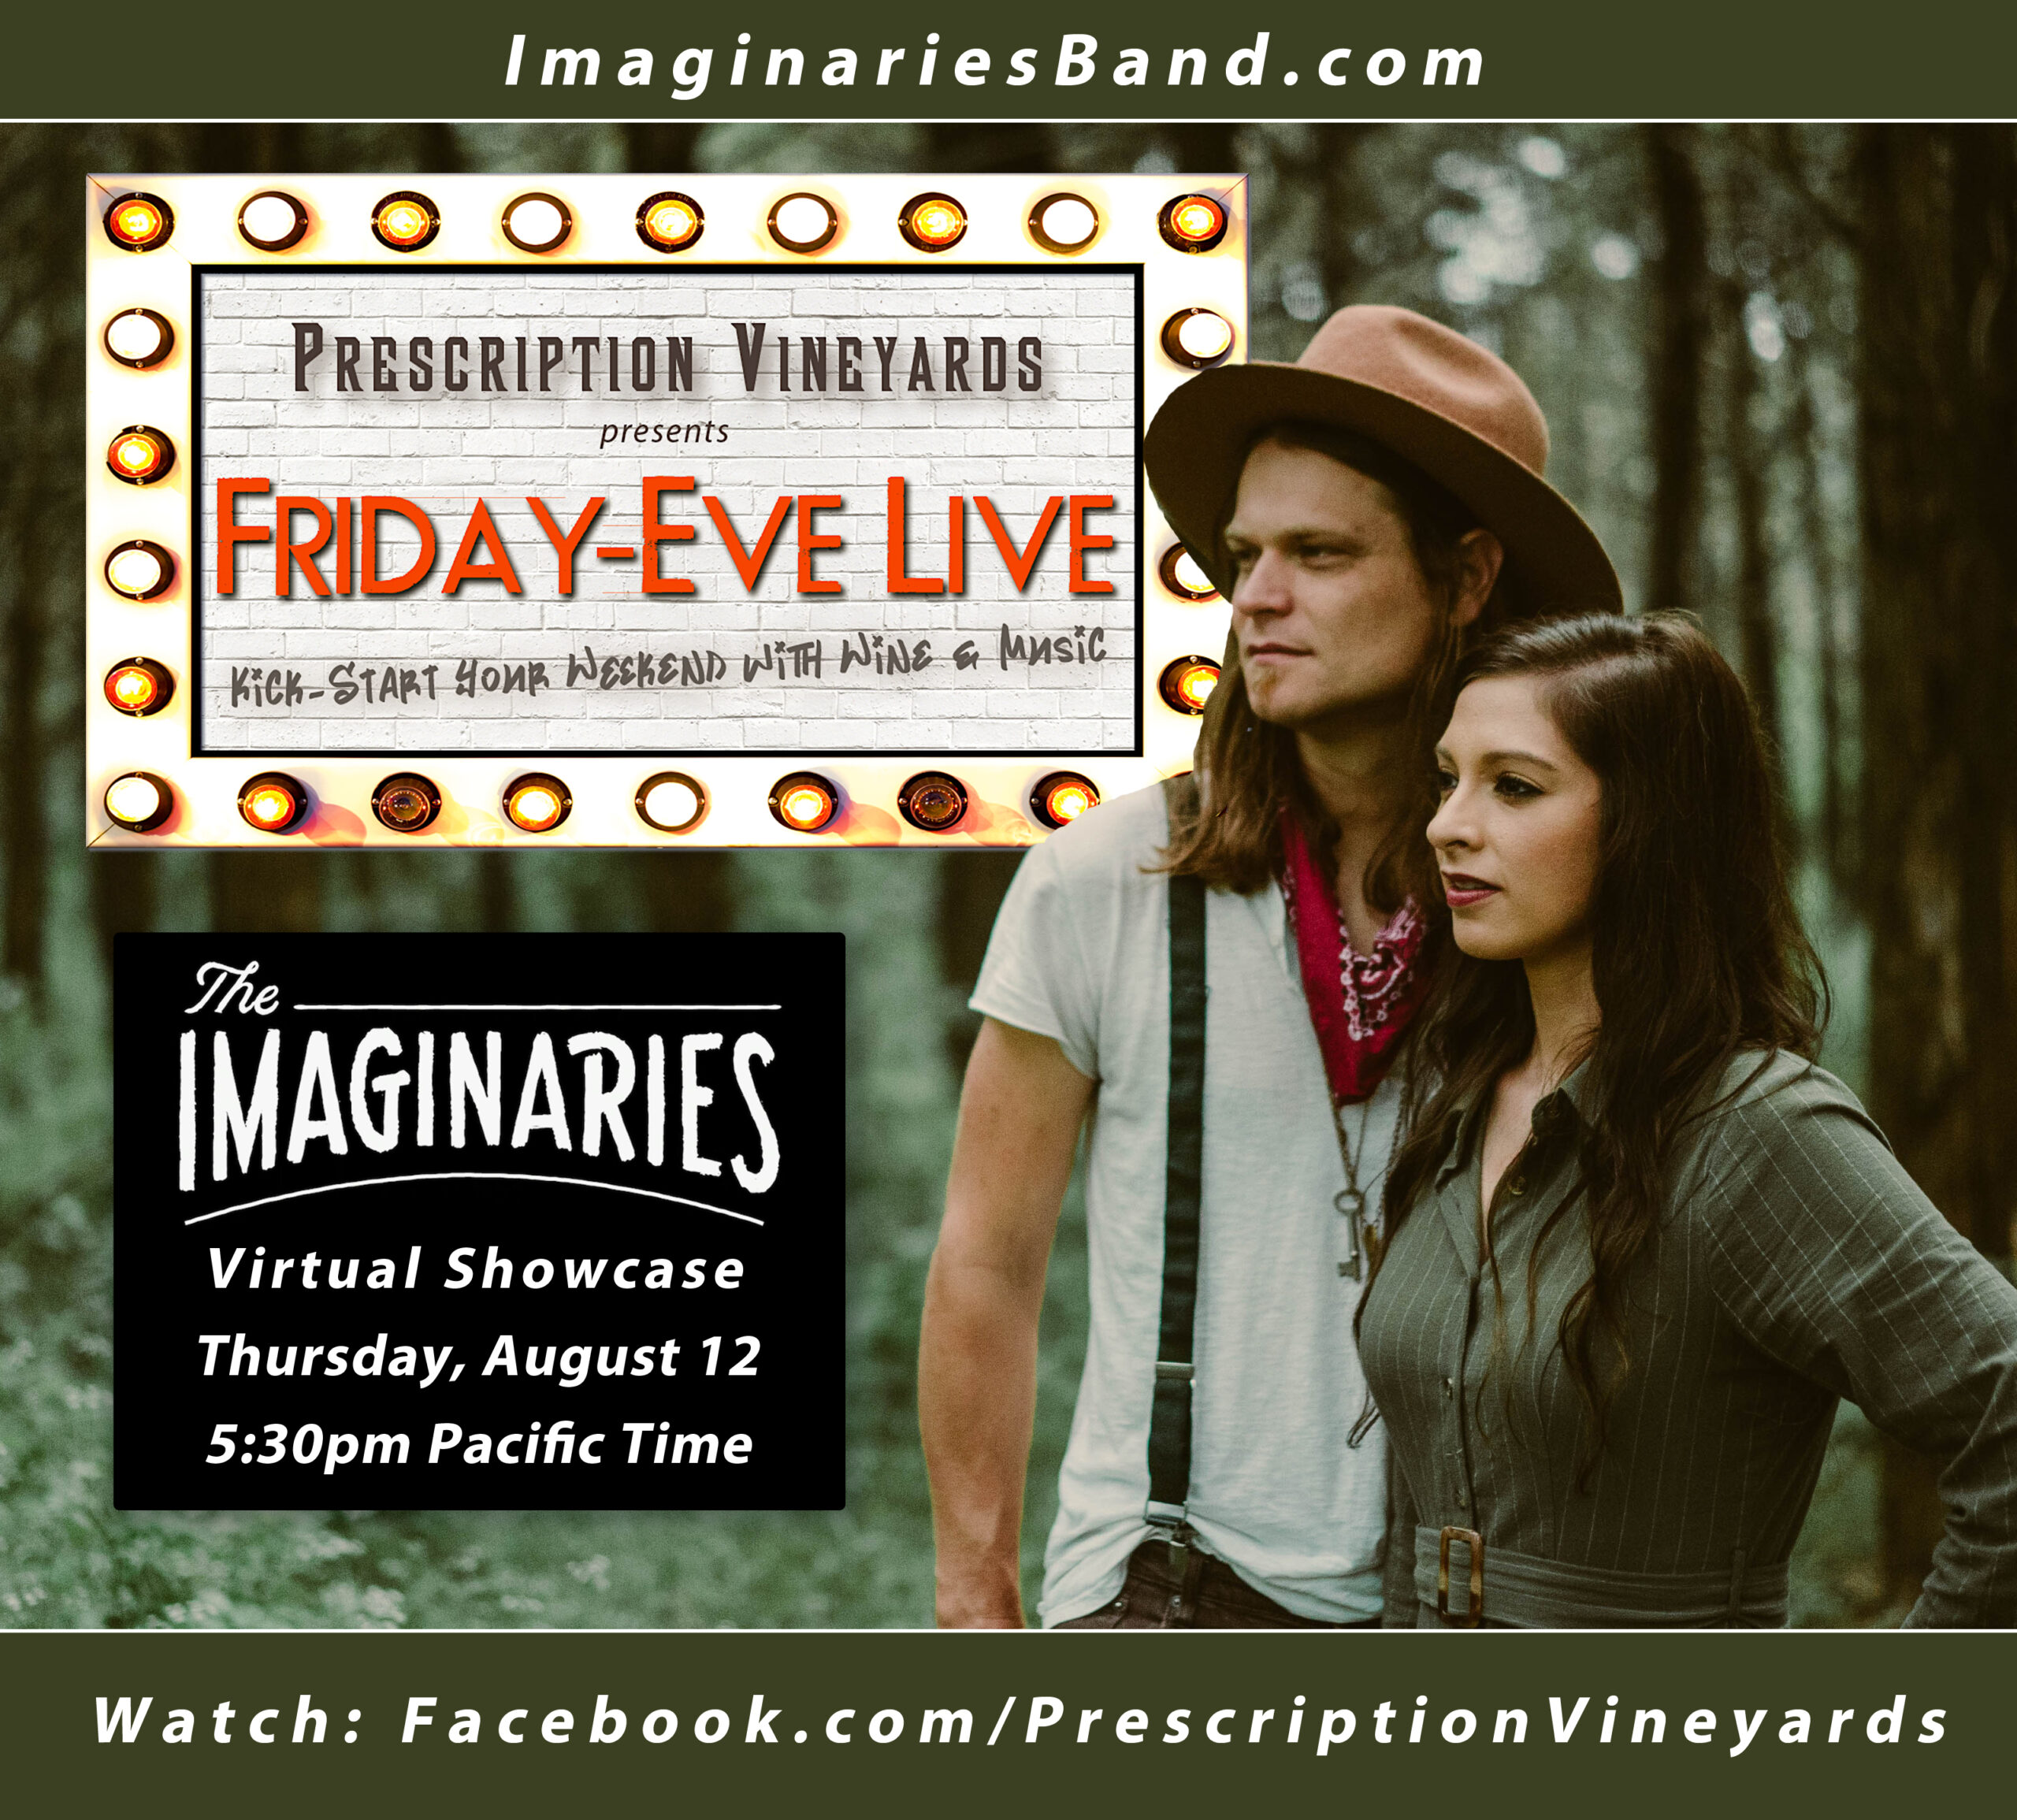 Friday-Eve Live - The Imaginaries